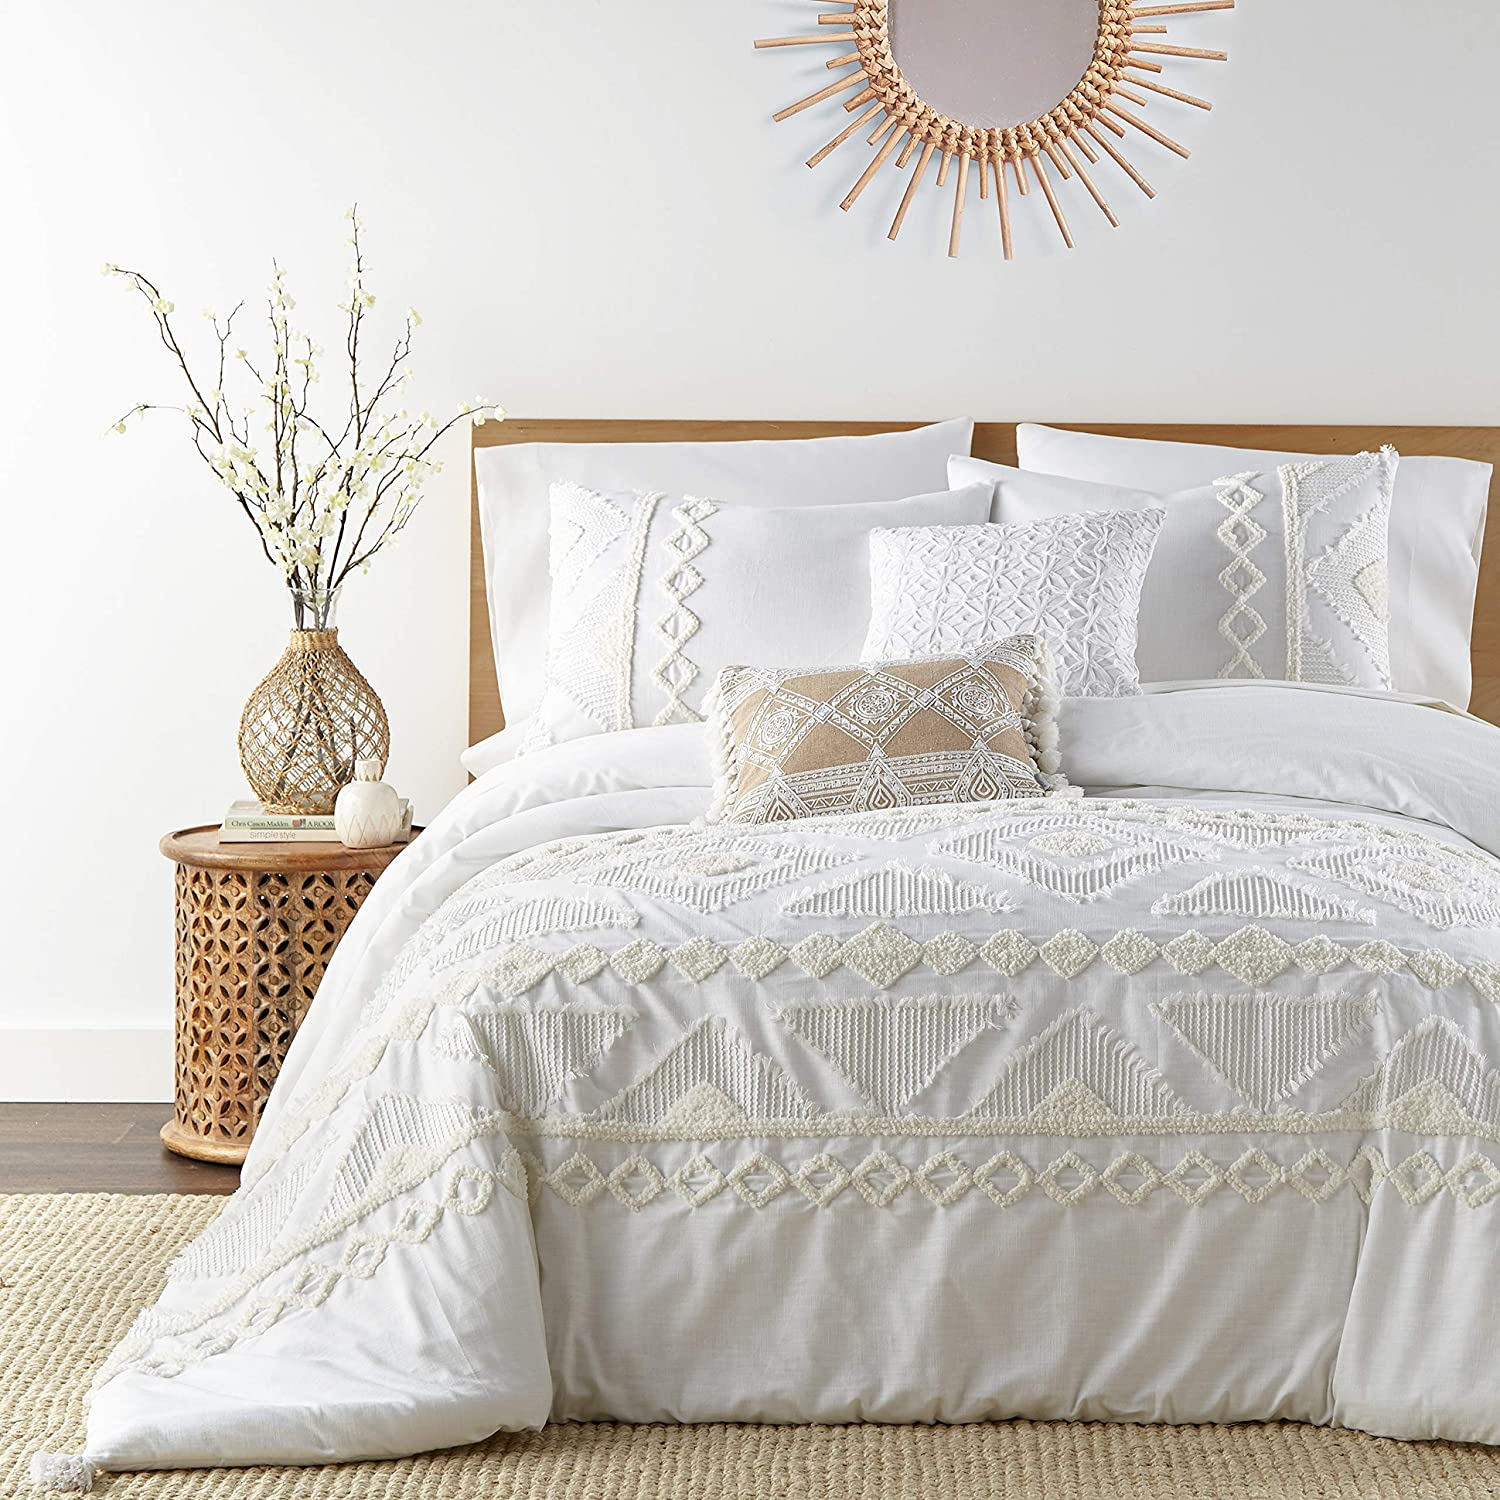 Levtex home - Harleson Duvet Cover Set - Full/Queen Duvet Cover + Two Standard Pillow Cases - Tufted Chenille Frayed Tribal in White and Cream - Duvet (90 x 94in.) and Pillow Case (26x20in.) - Cotton